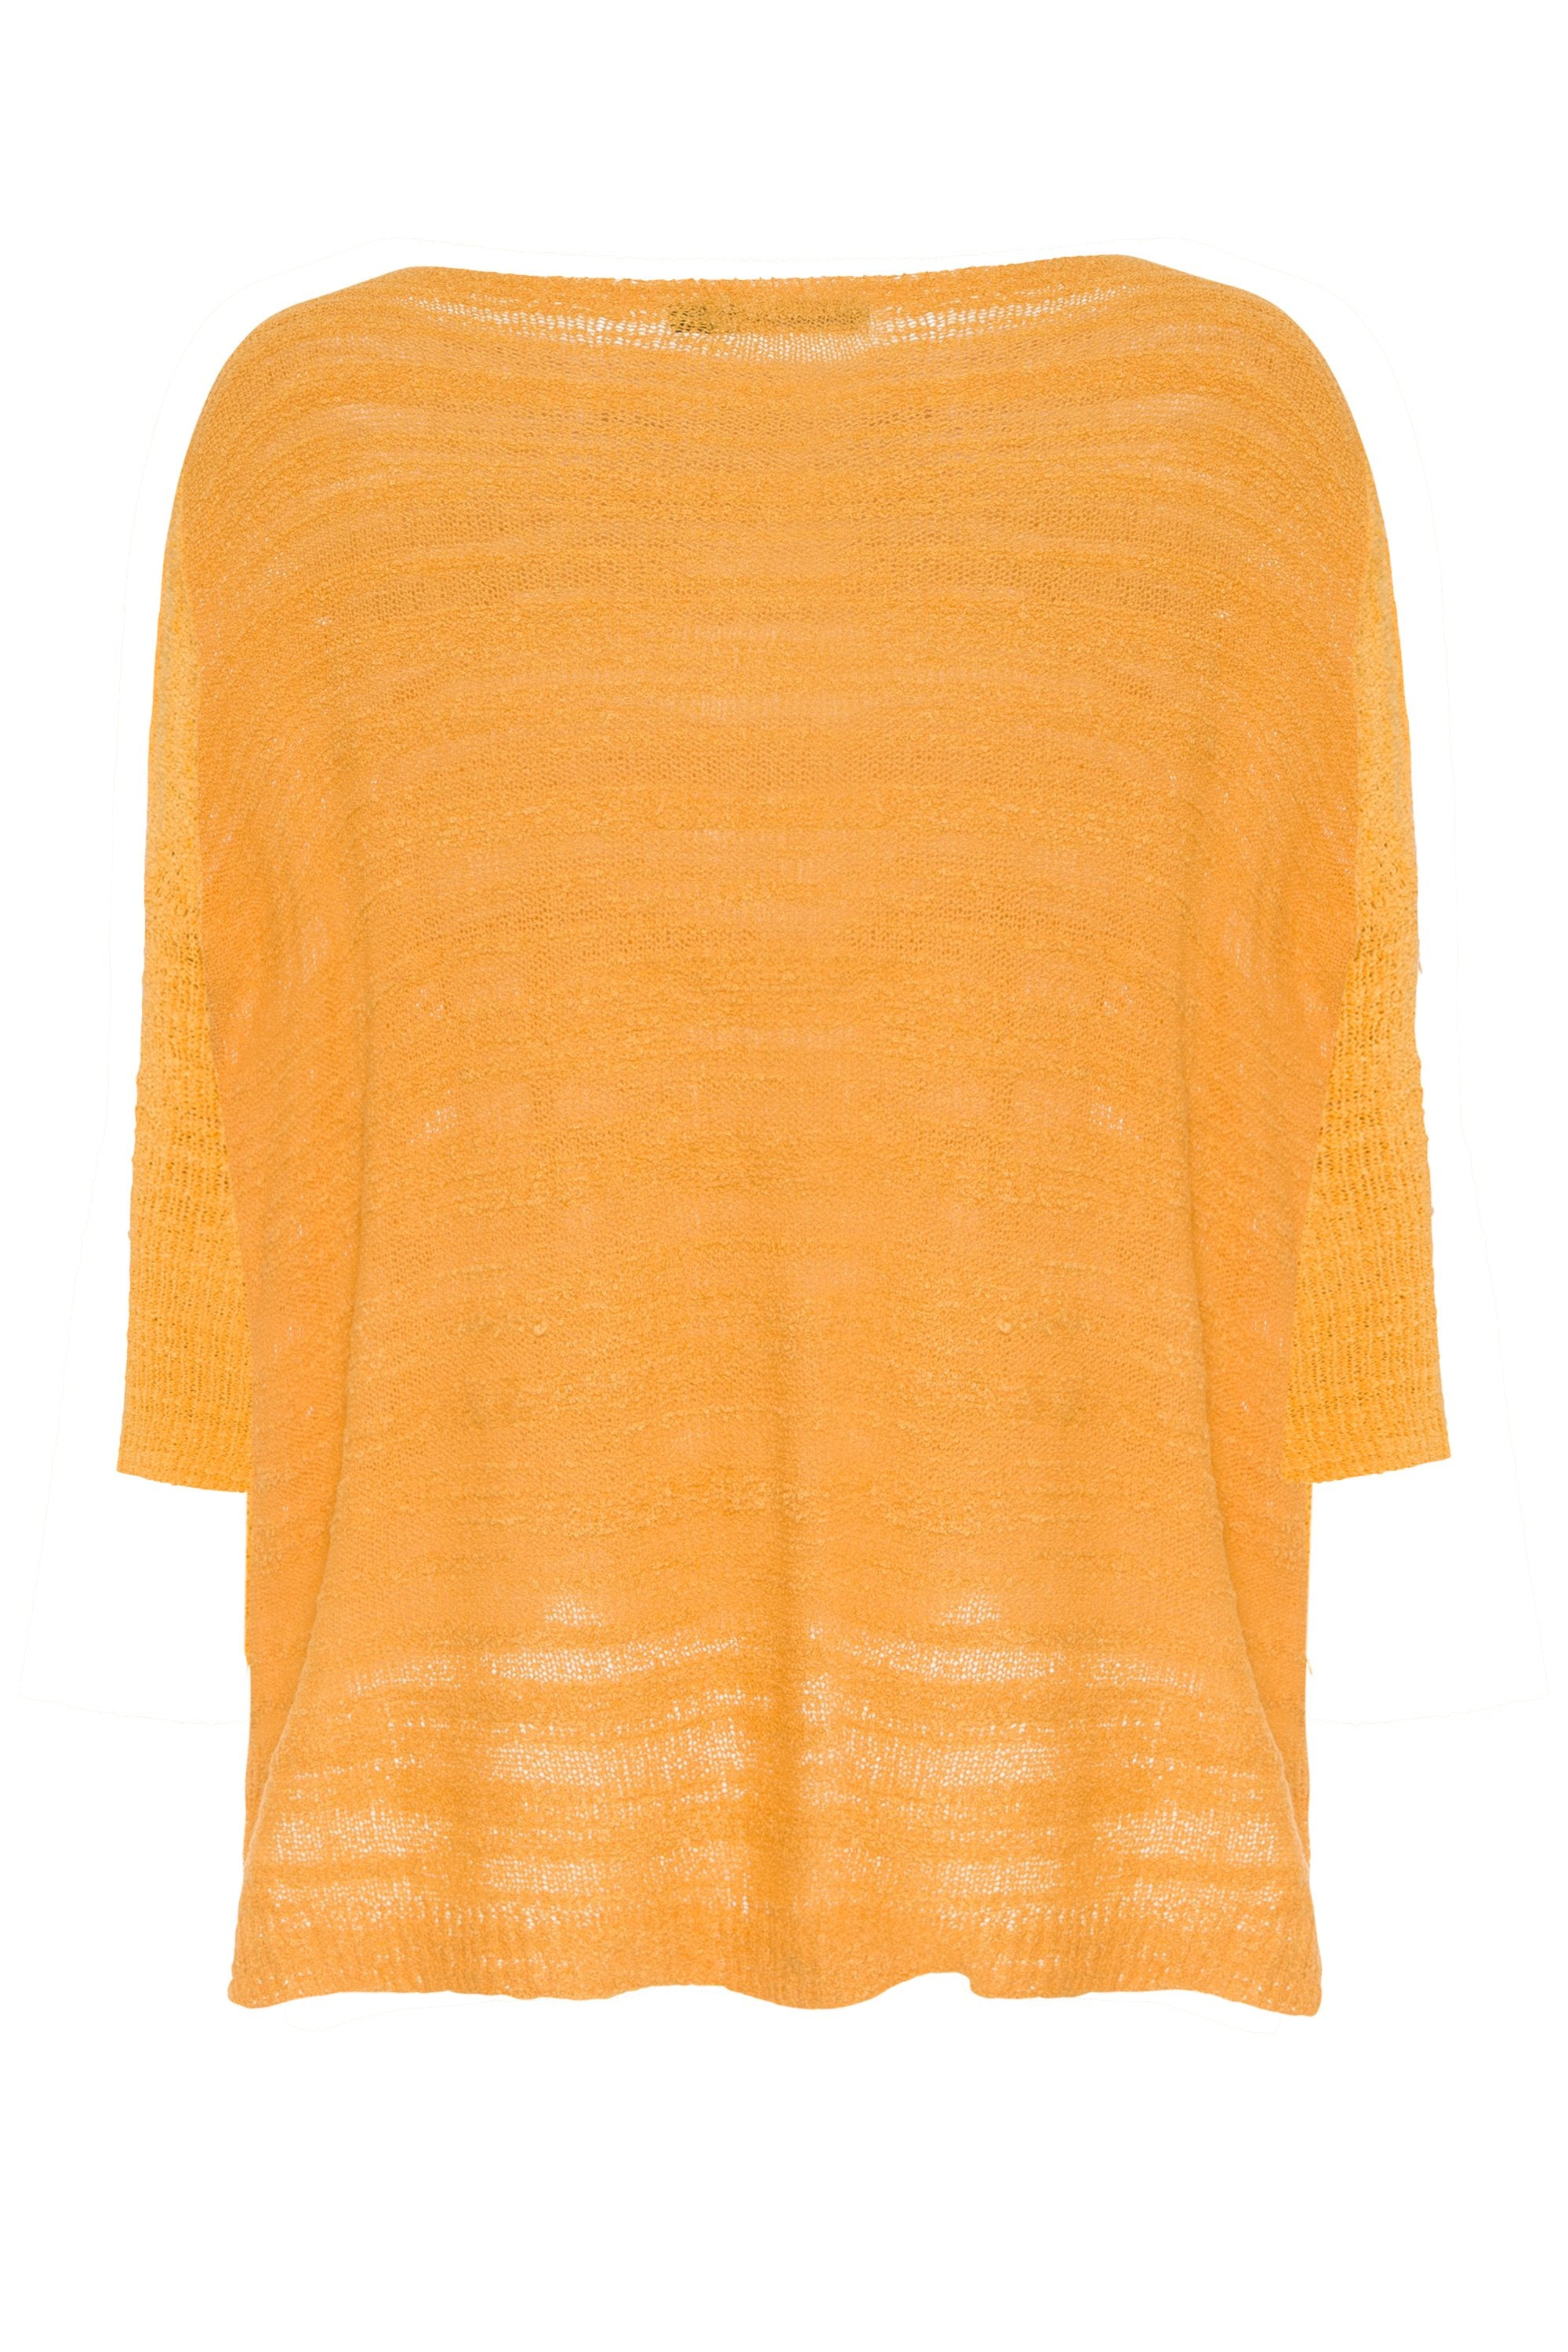 Summer Knit In Mango